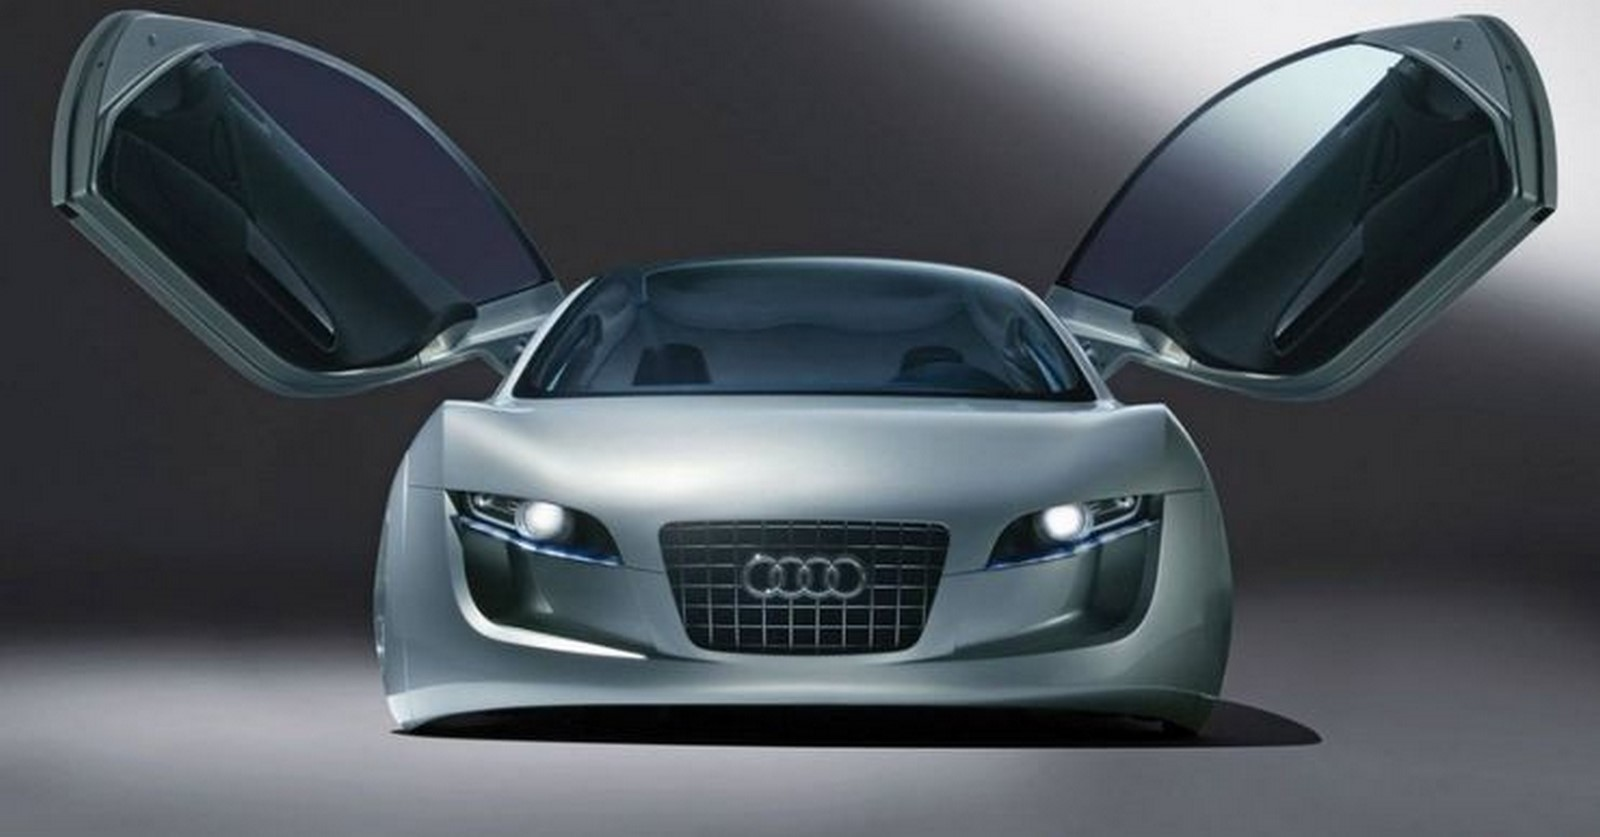 Top 10 Automobile Designs Inspired by Sci-Fi Movies and TV Sheet1